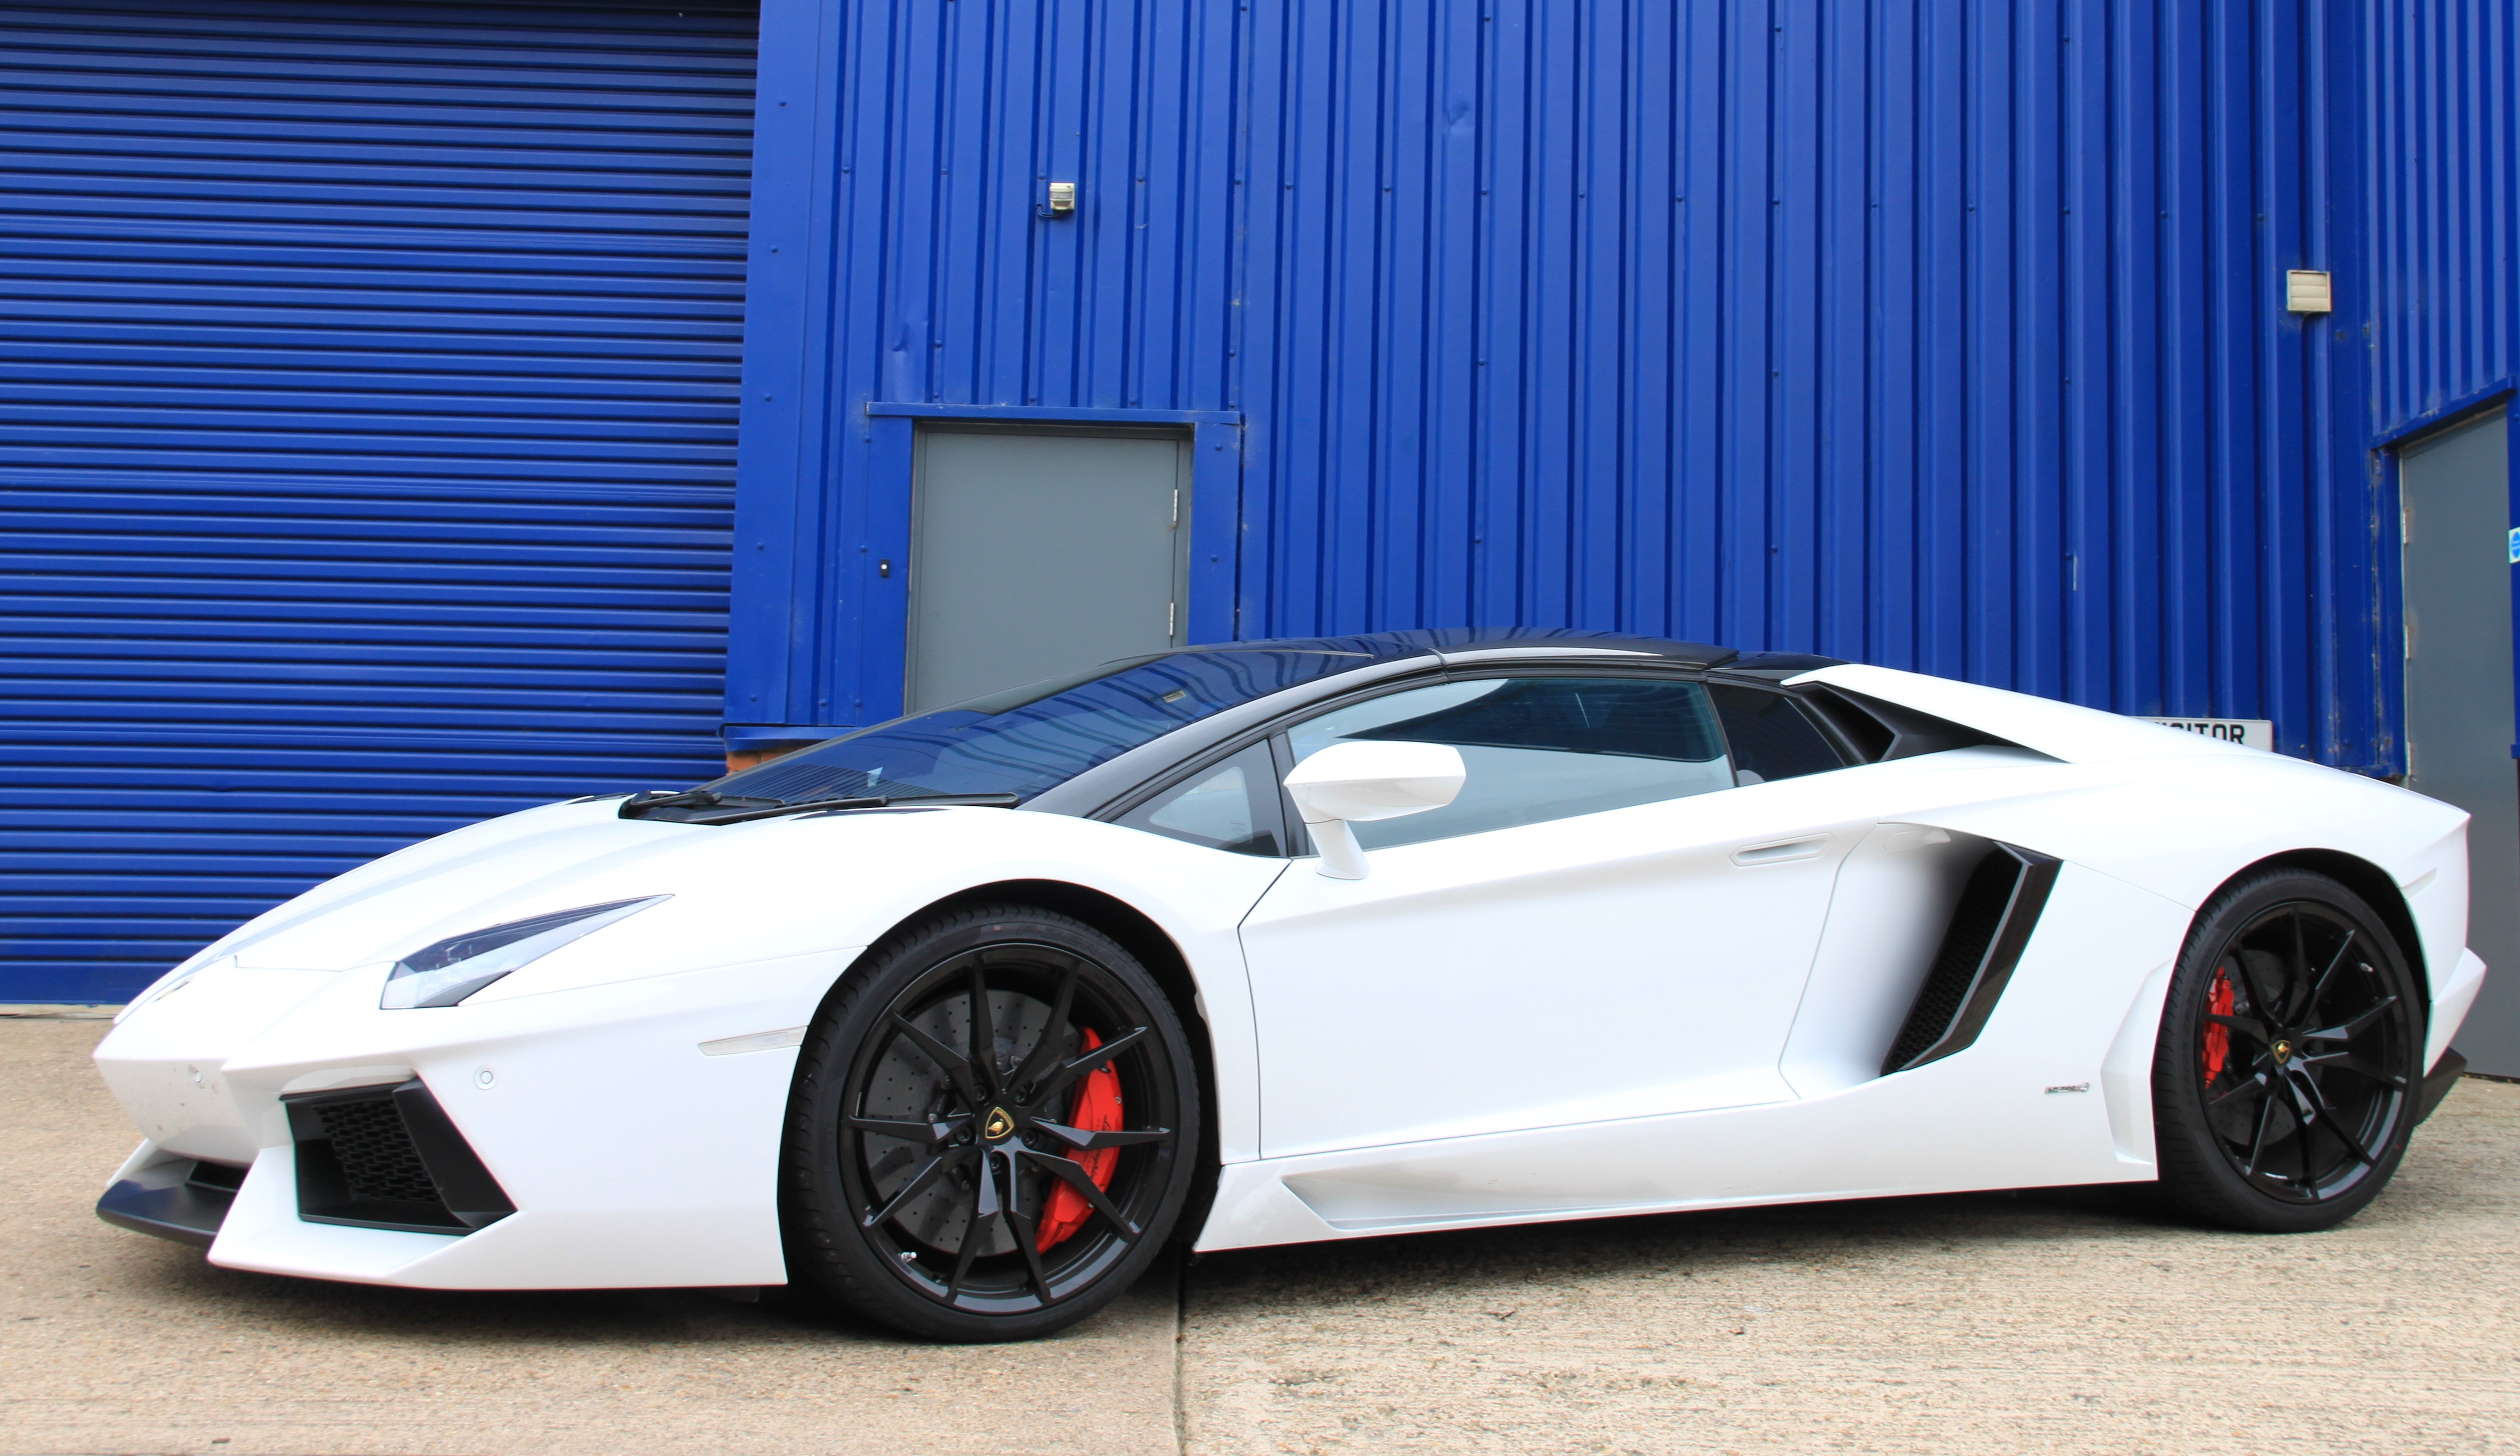 Lamborghini Aventador Tuning Upgrade Package